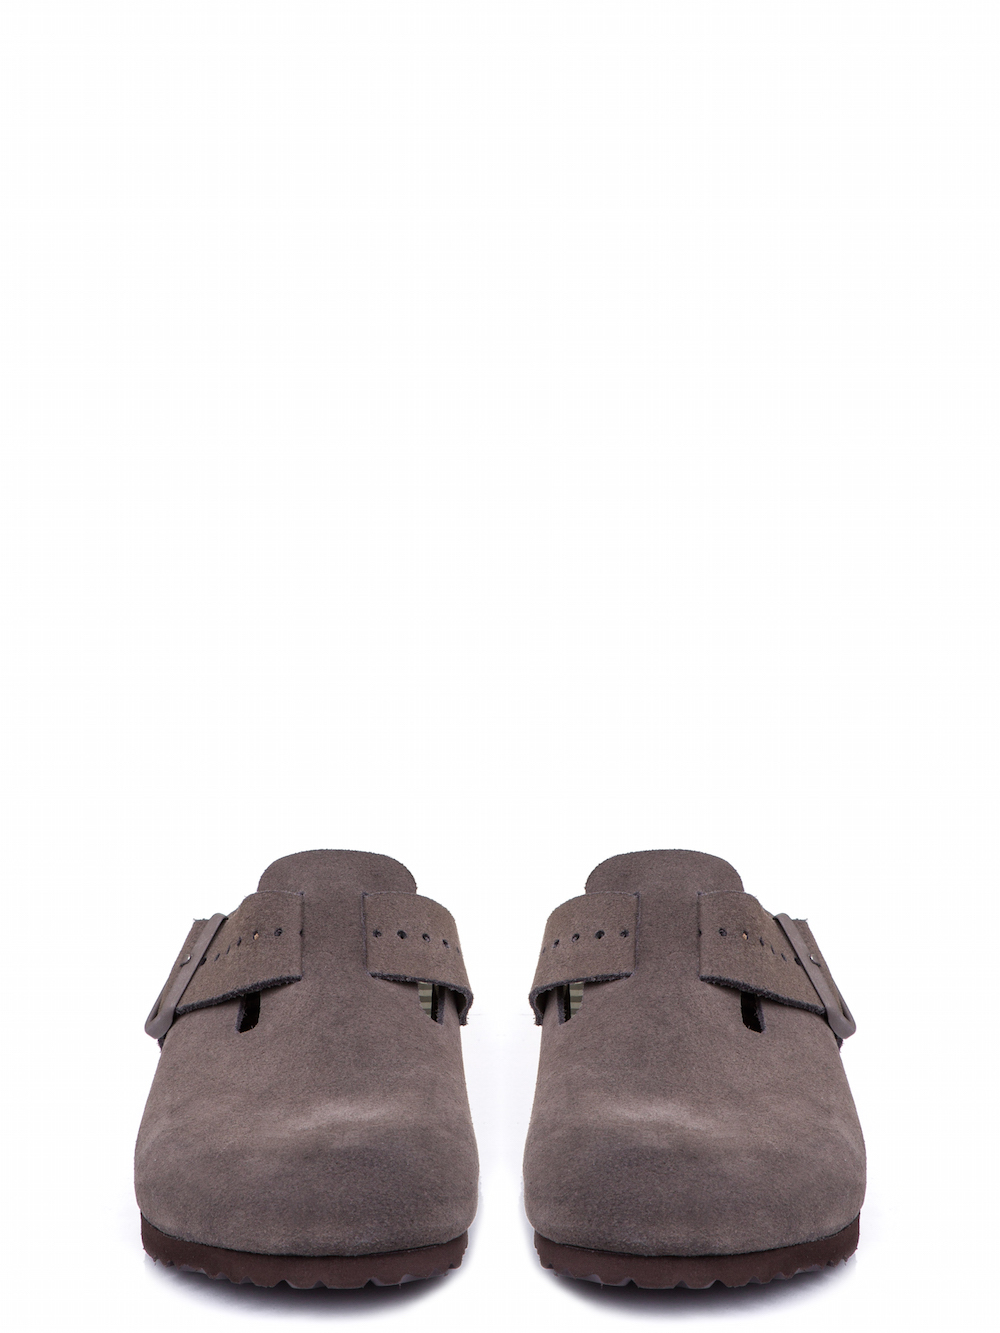 RICK OWENS X BIRKENSTOCK BOSTON CLOG IN DUST